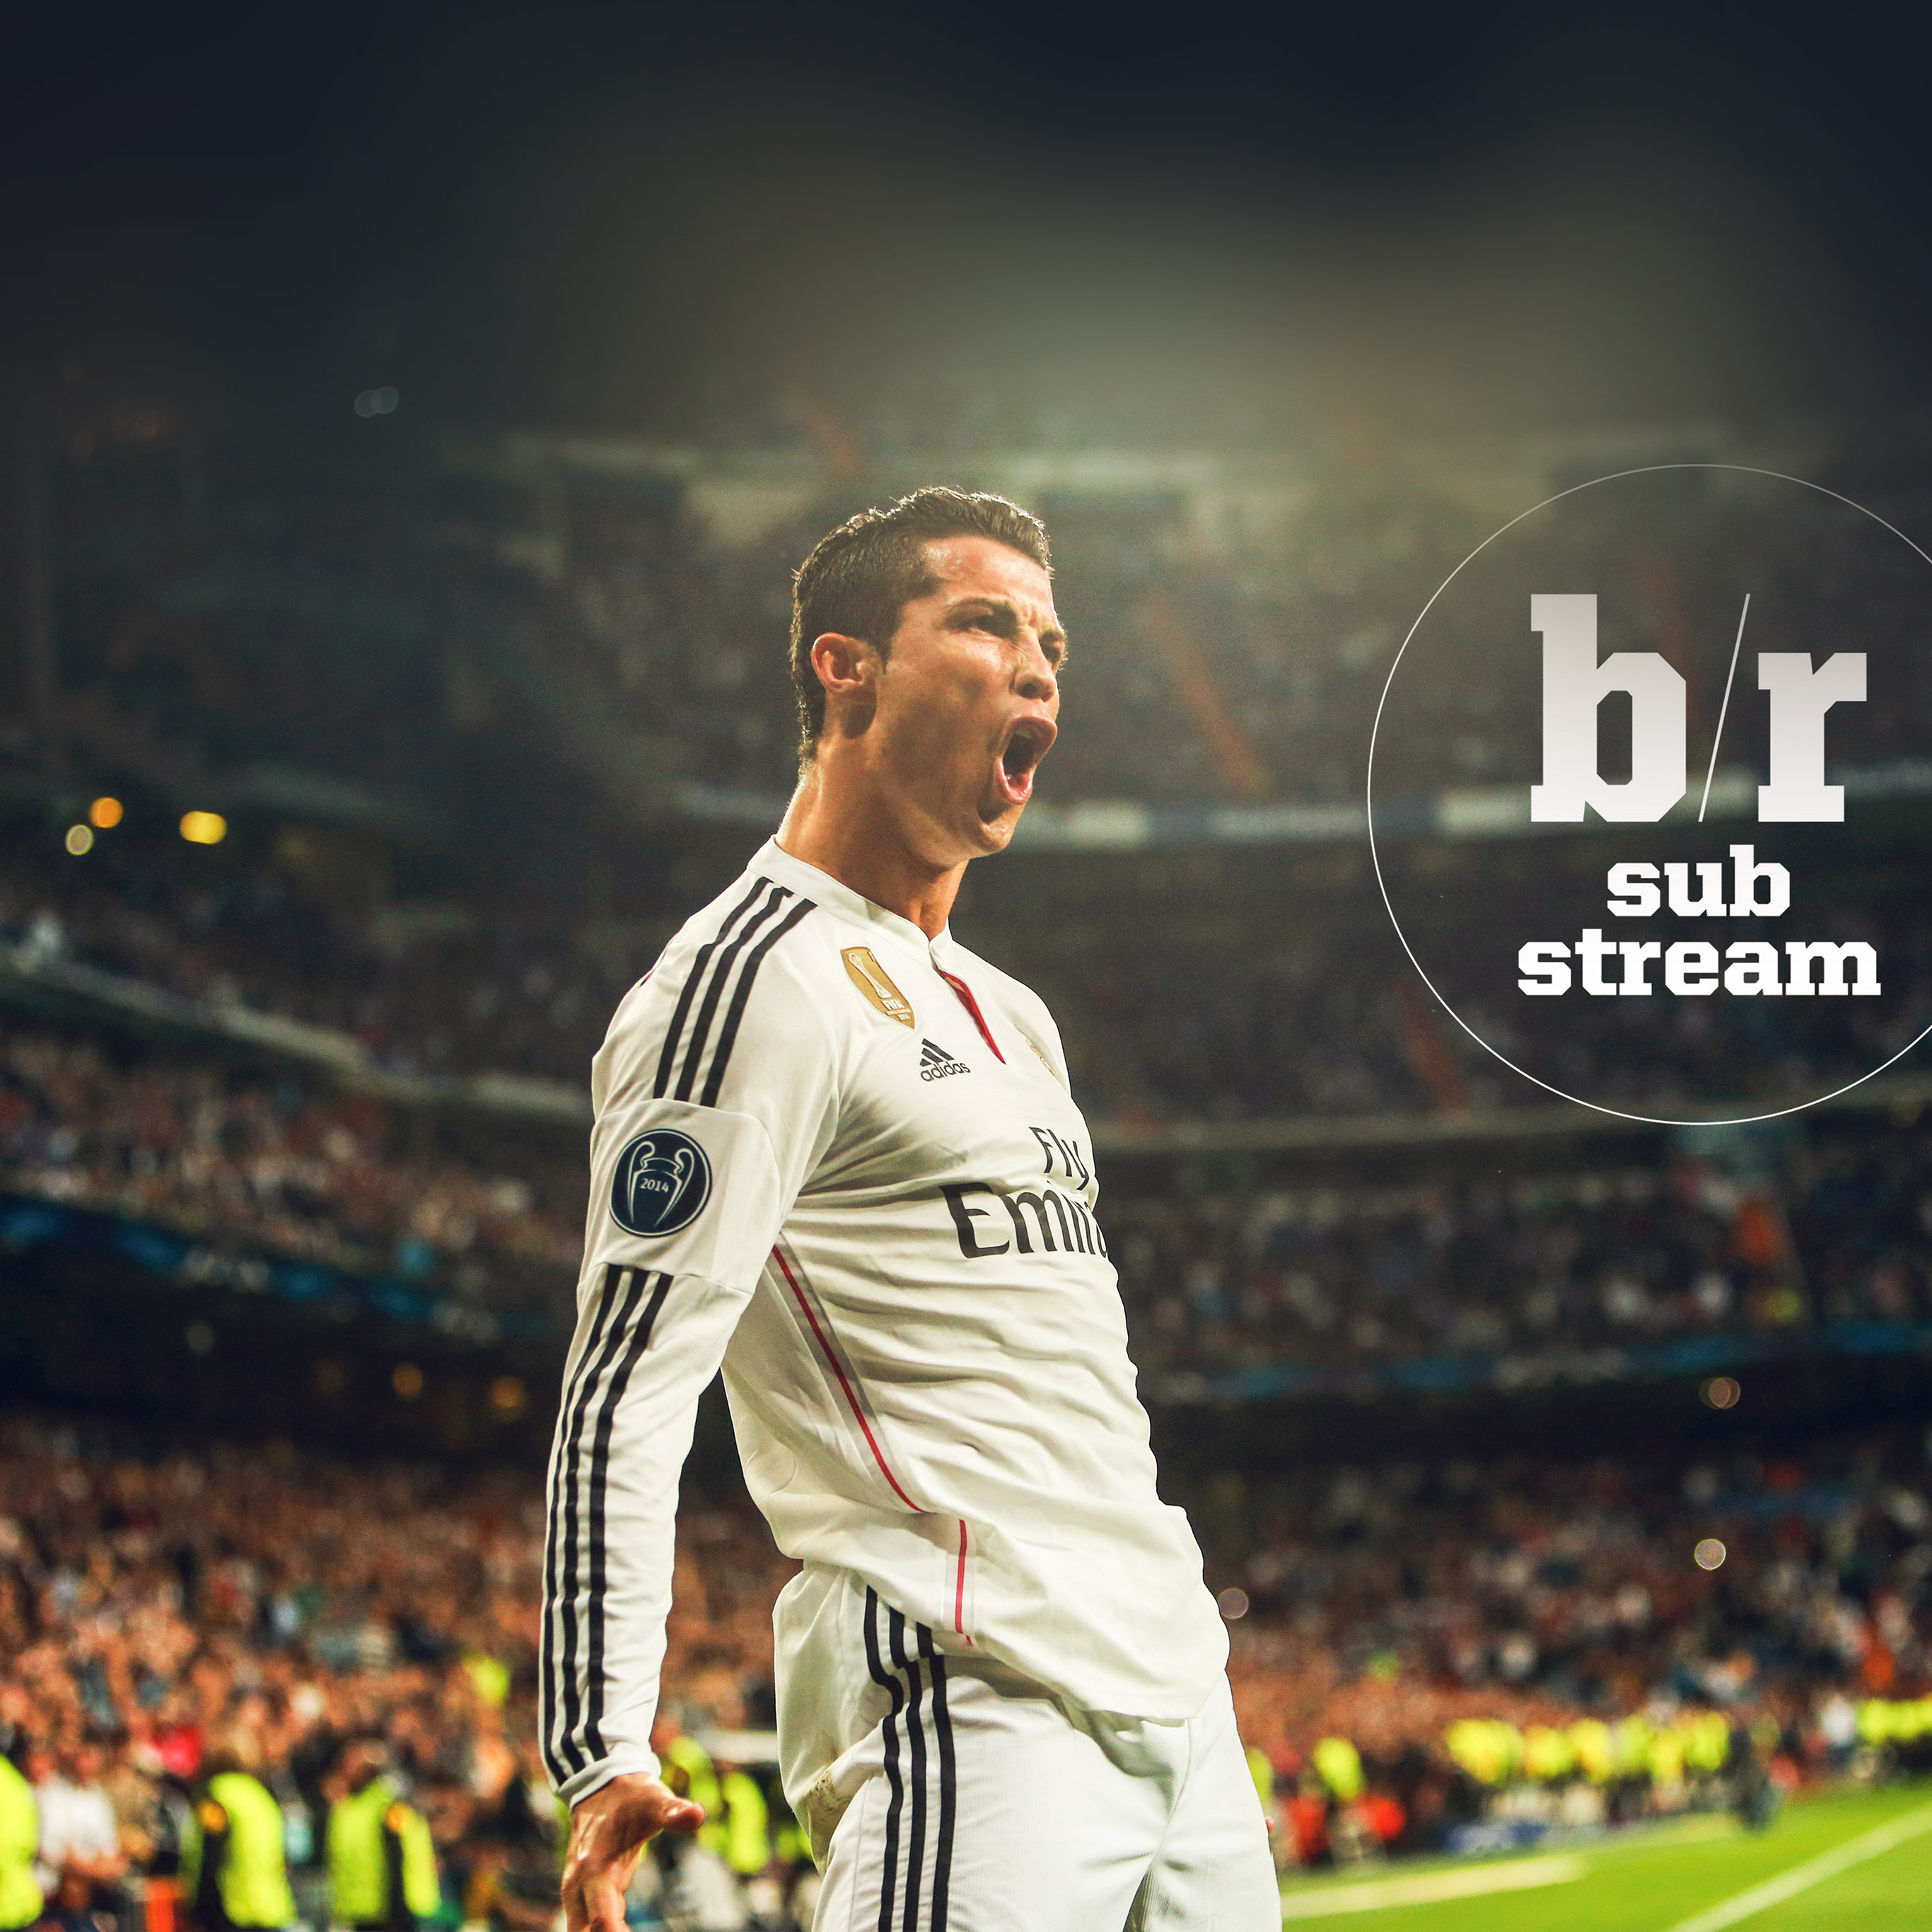 218972333 real madrid essay Real madrid essay sample 1) what is the real madrid business model what are the key drivers for each revenue stream the business model is based on purchasing the most famous players even at high cost to then make a profit on merchandising and marketing by the use of their names.